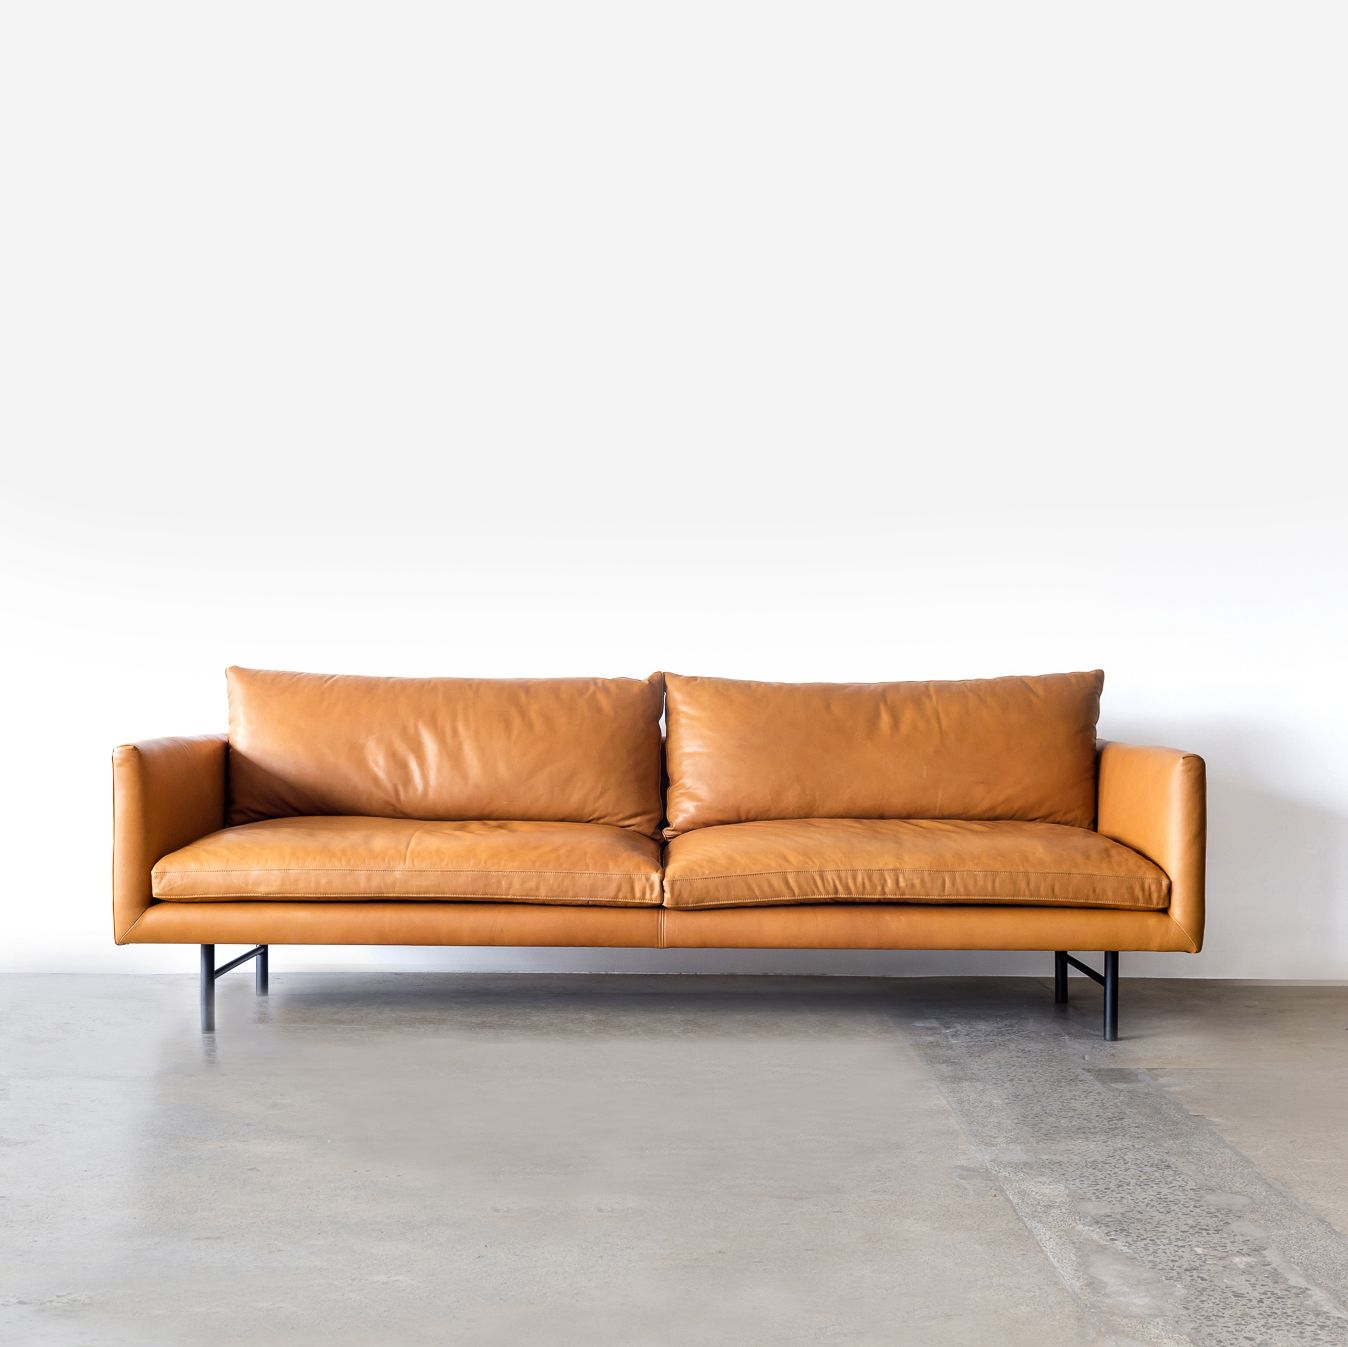 From Every Angle The Louis Welcomes With Open Arms As A Roomy Sofa Chair Or Ottoman Its Proportions Best Leather Sofa Leather Sofa Louis Sofa